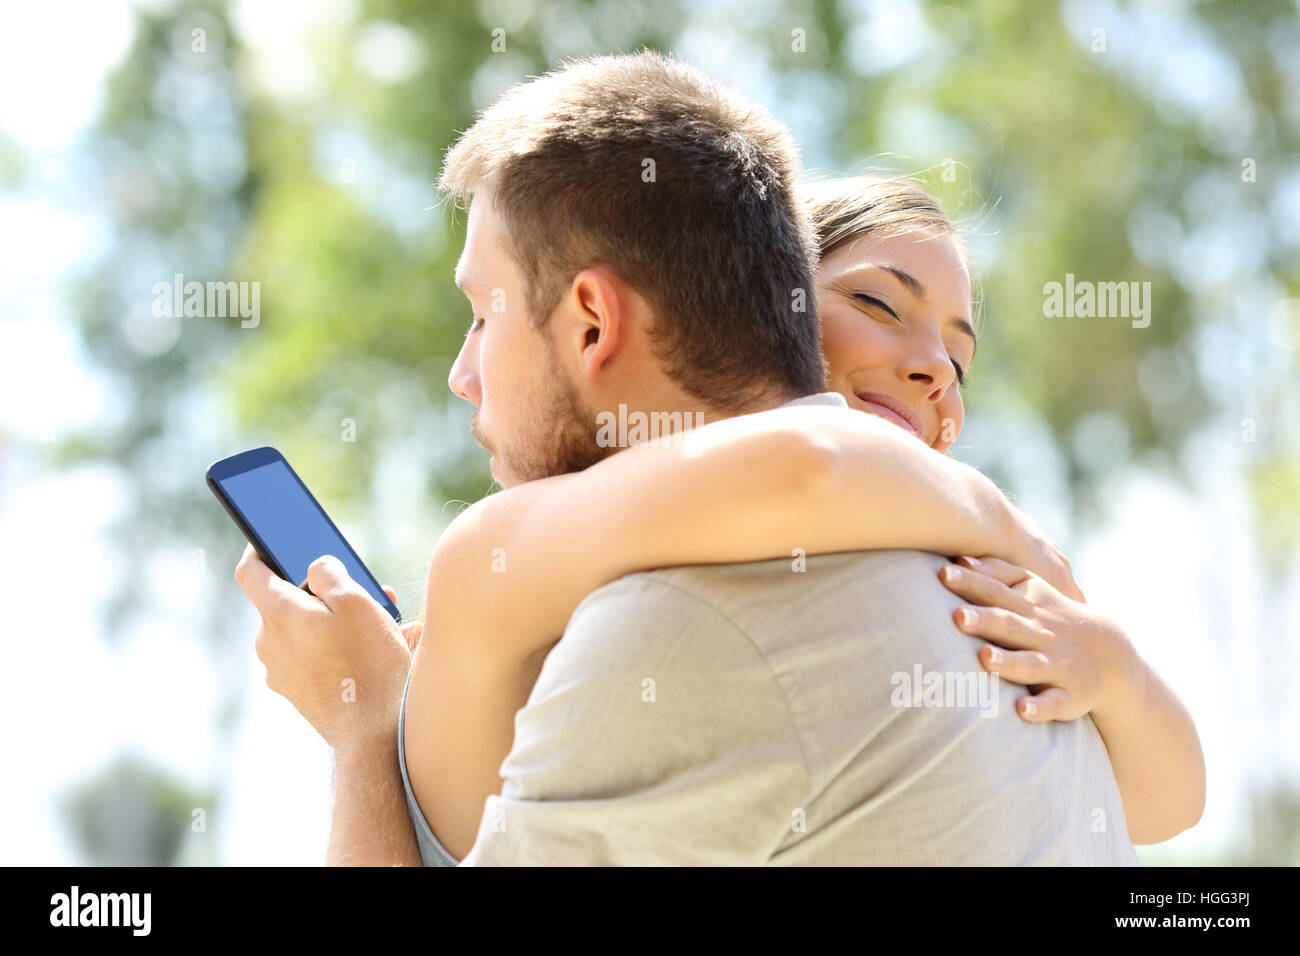 Cheater texting with his other lover on phone and hugging his innocent girlfriend - Stock Image